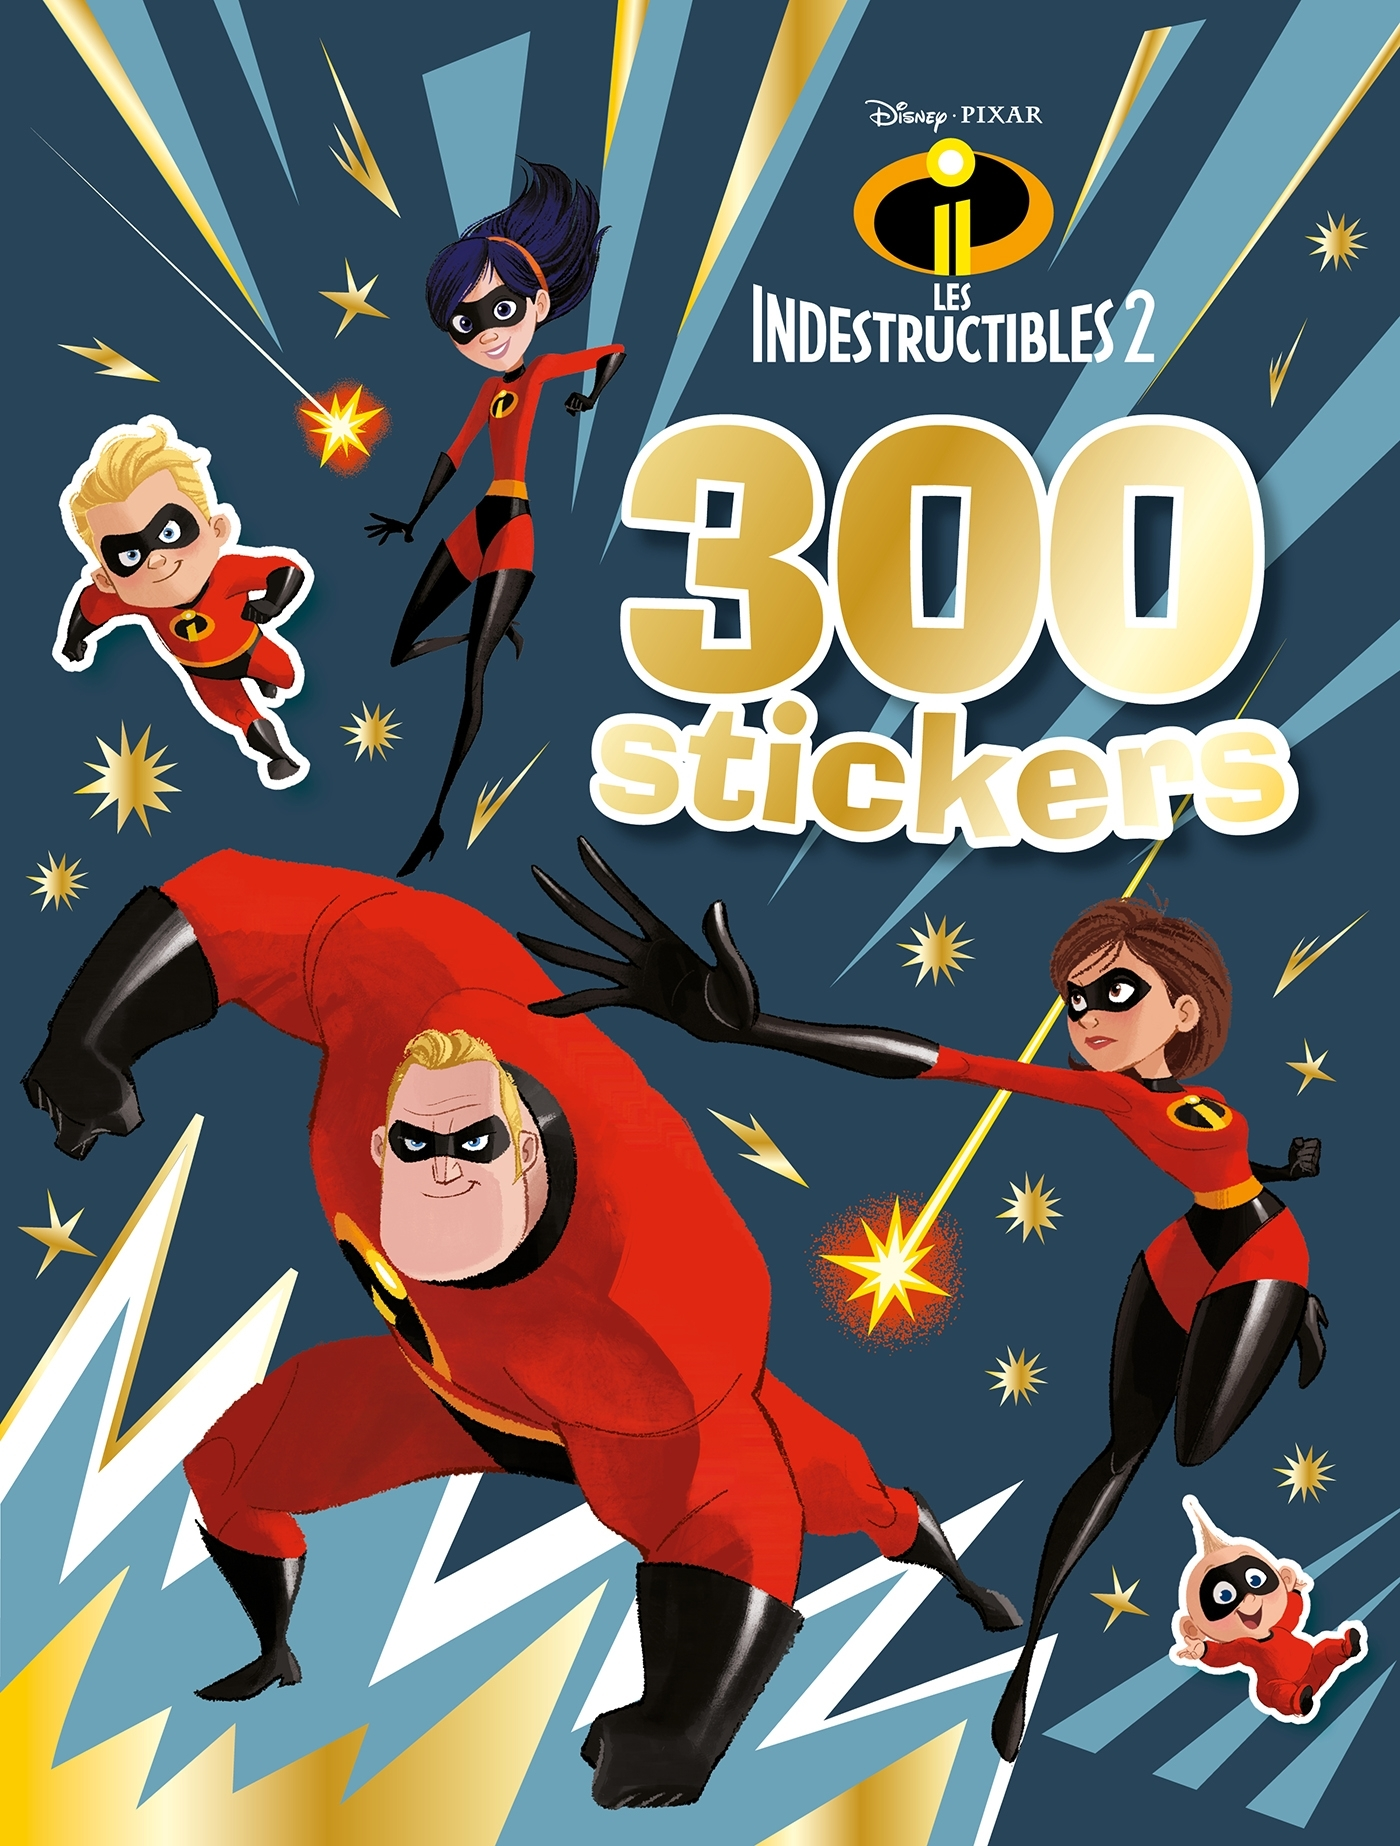 LES INDESTRUCTIBLES 2 - 300 STICKERS